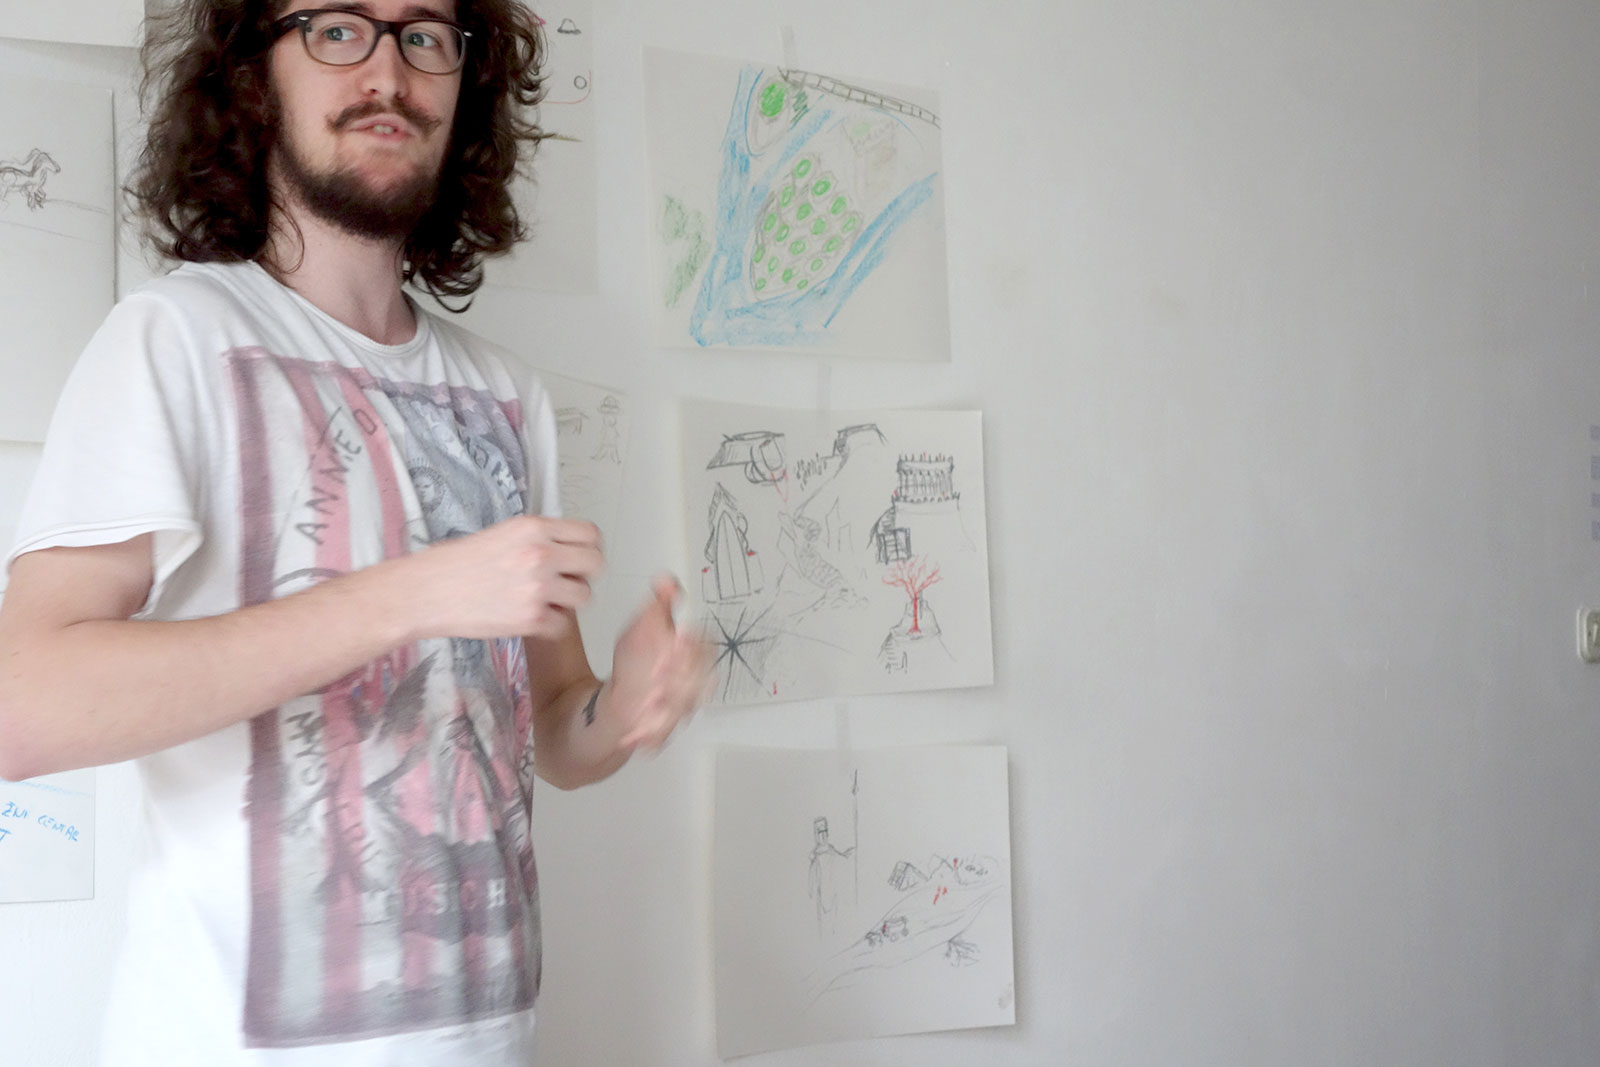 Participant presenting his drawings and imaginations